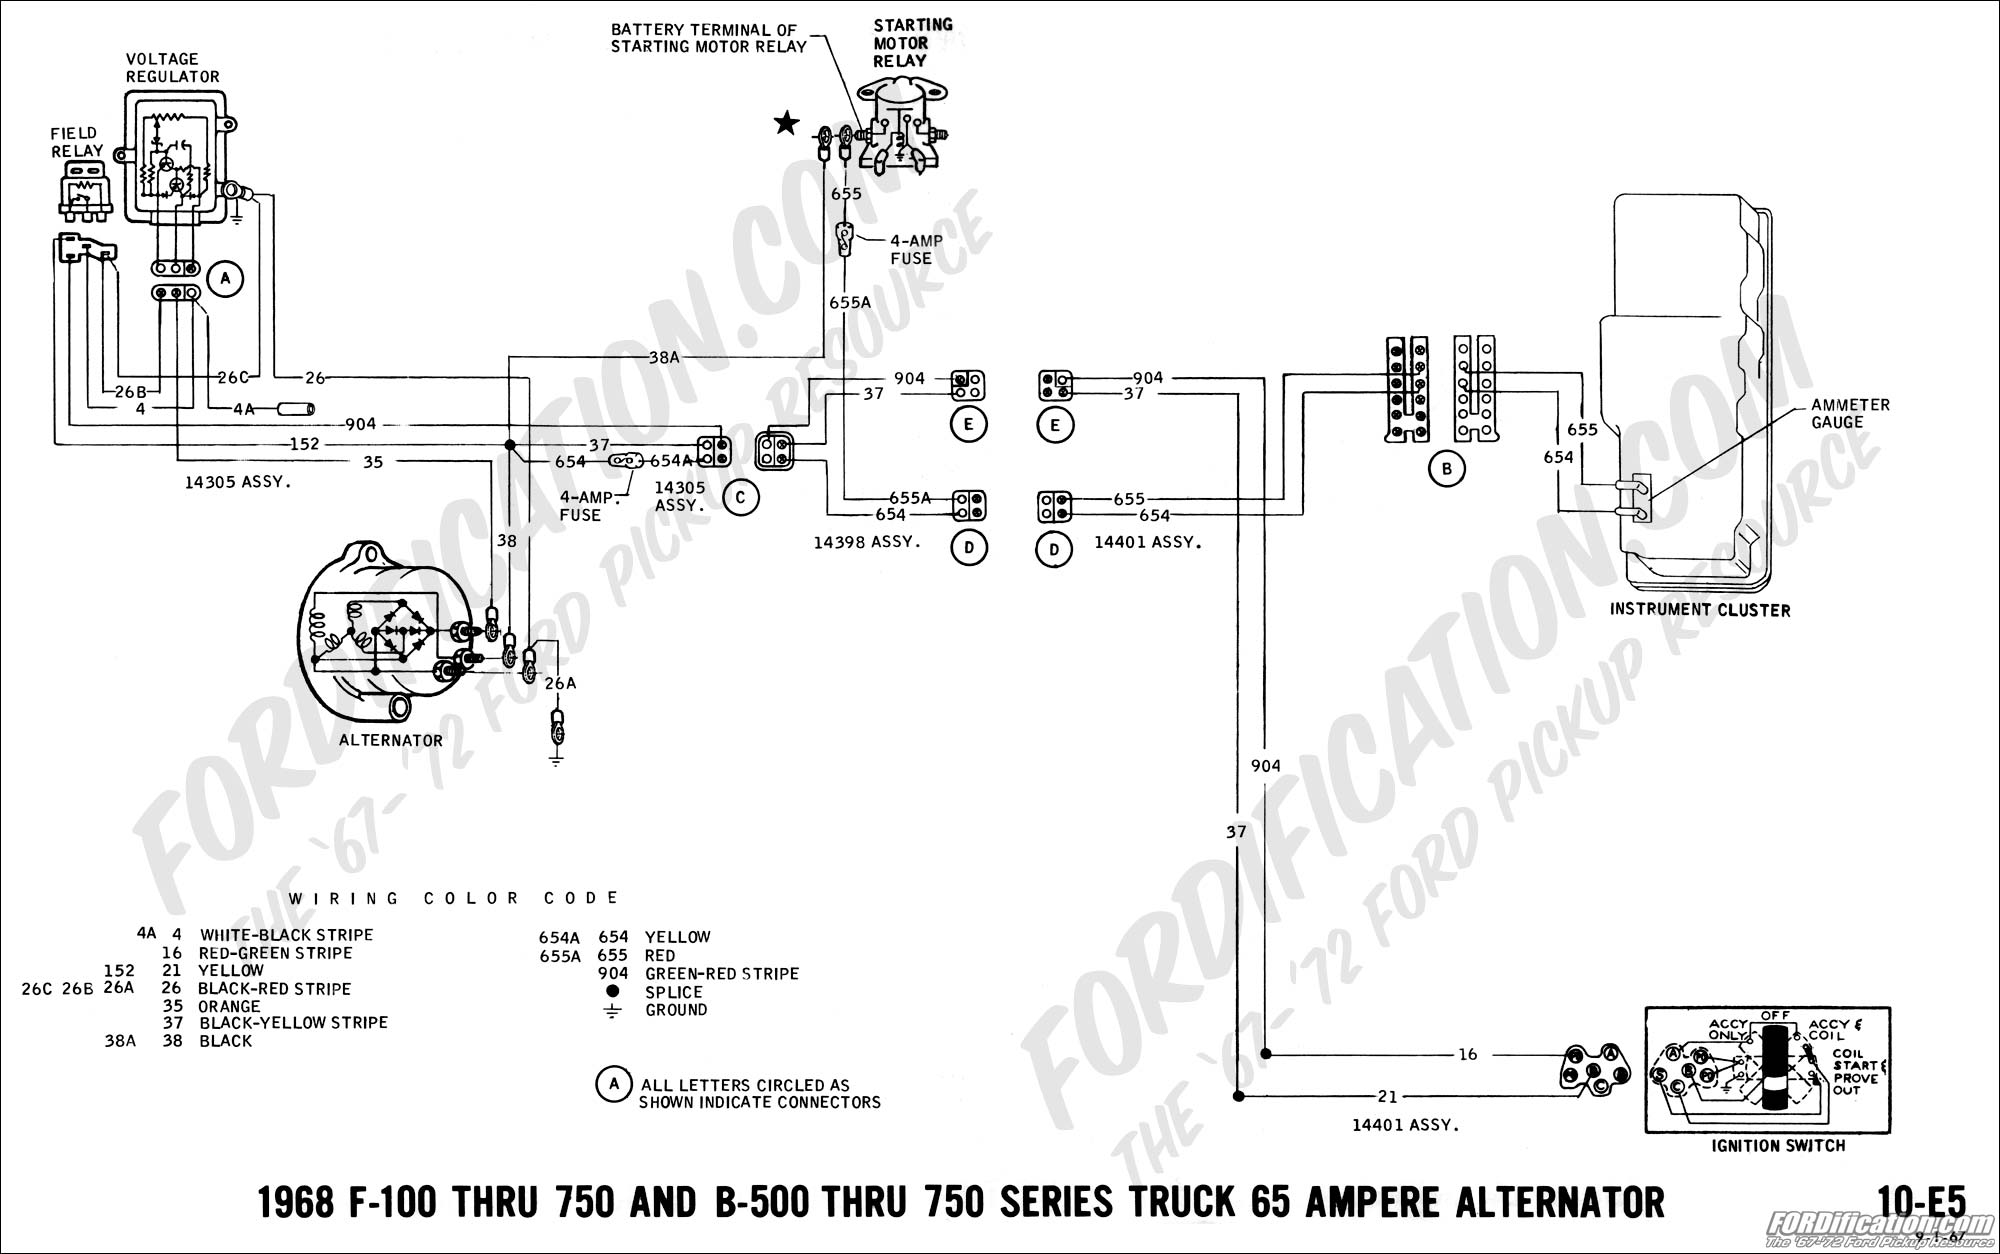 68 07 ford truck technical drawings and schematics section h wiring 65 mustang turn signal switch wiring diagram at panicattacktreatment.co